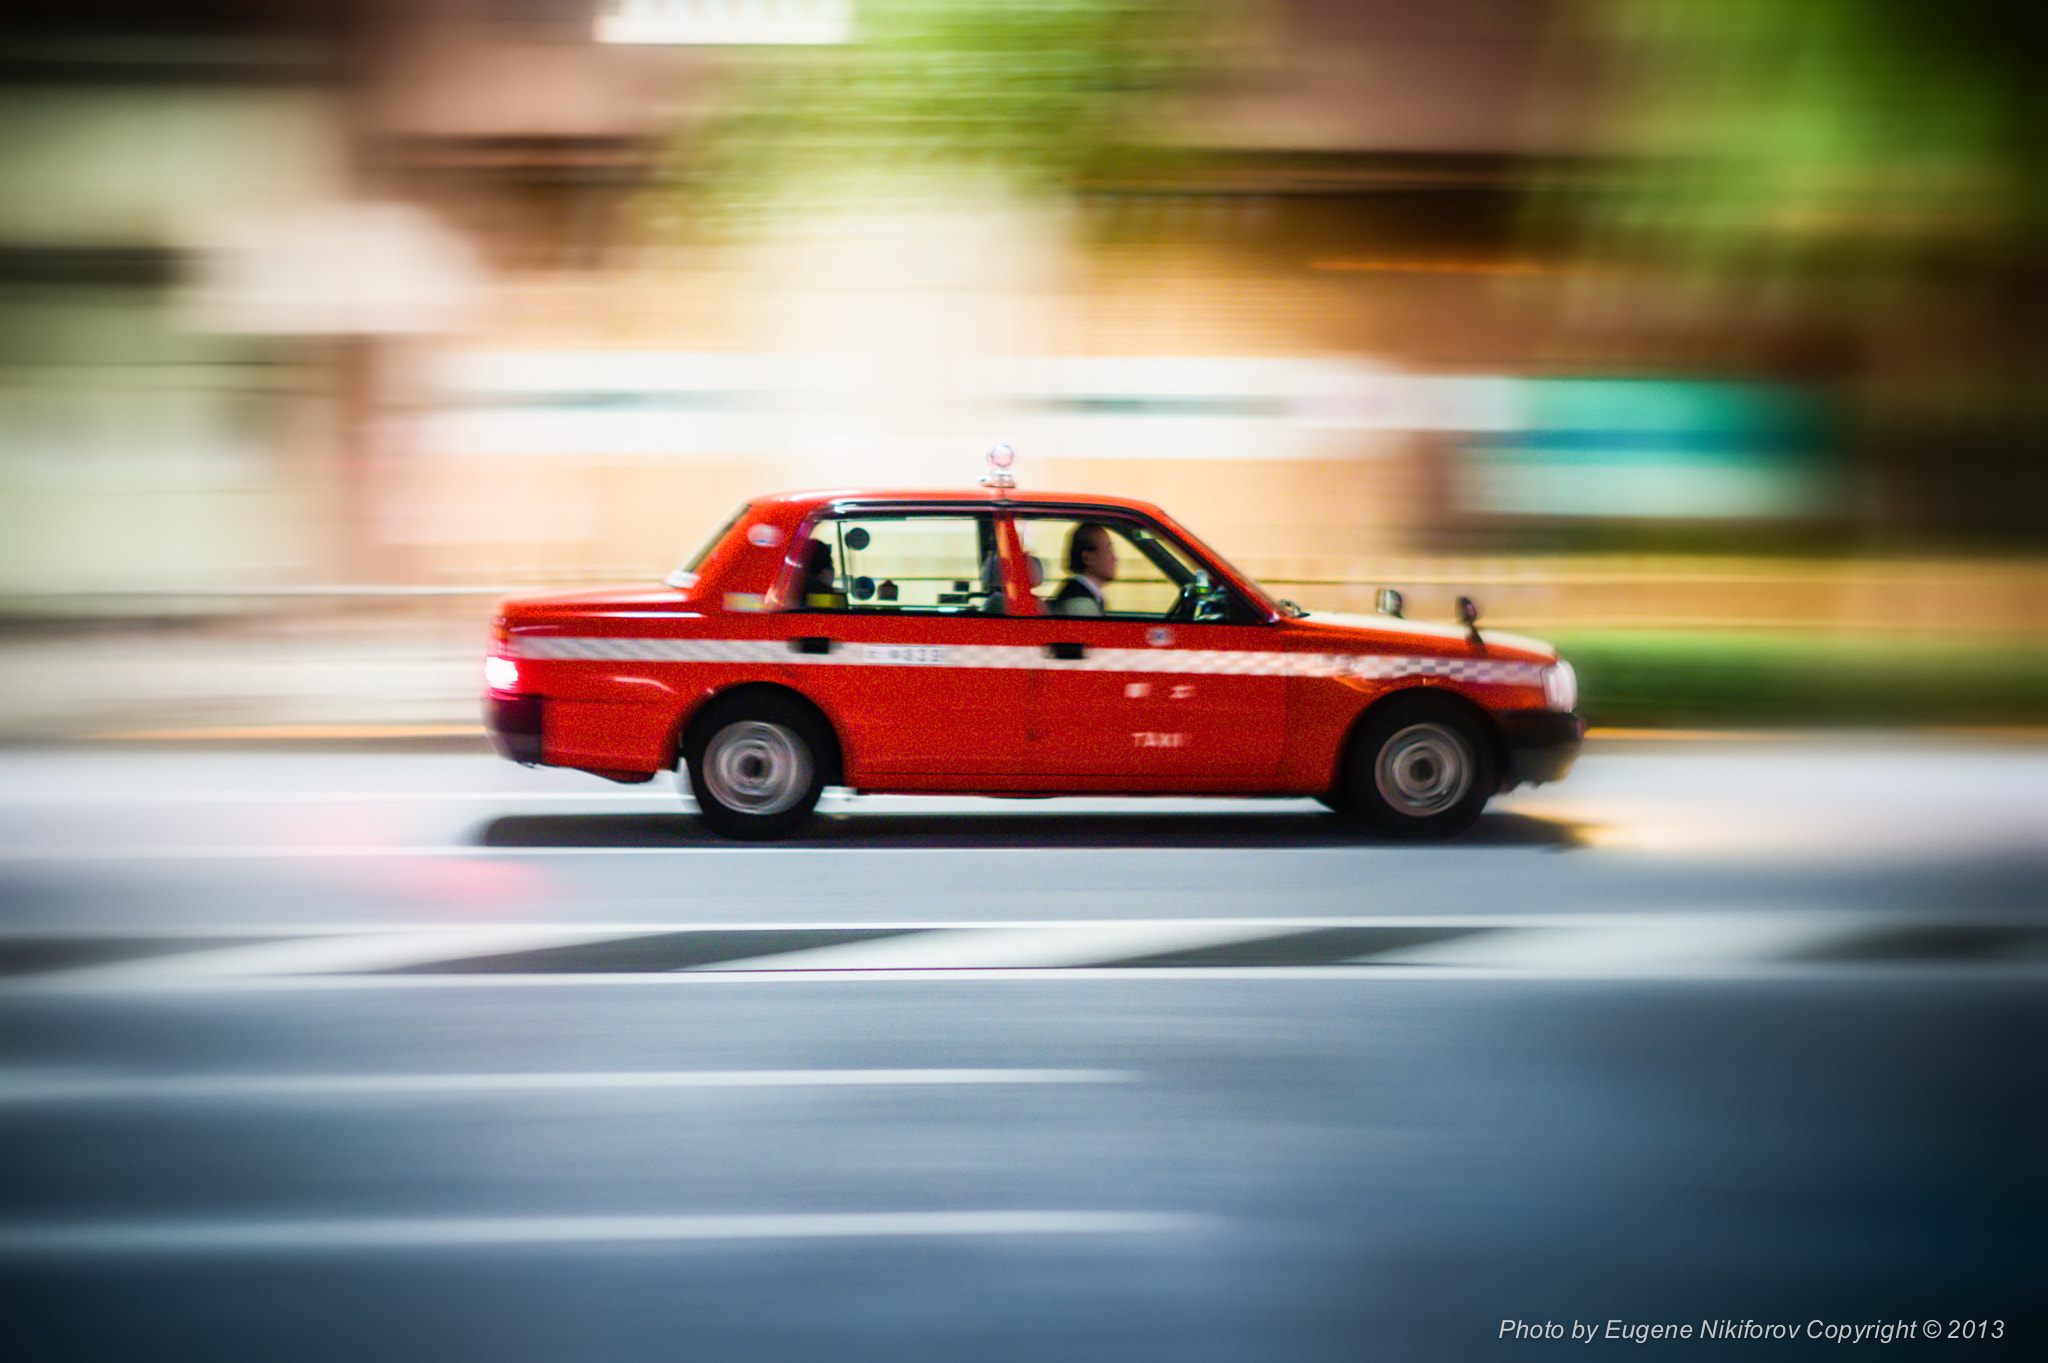 Photograph Tokyo Taxi by Eugene Nikiforov on 500px